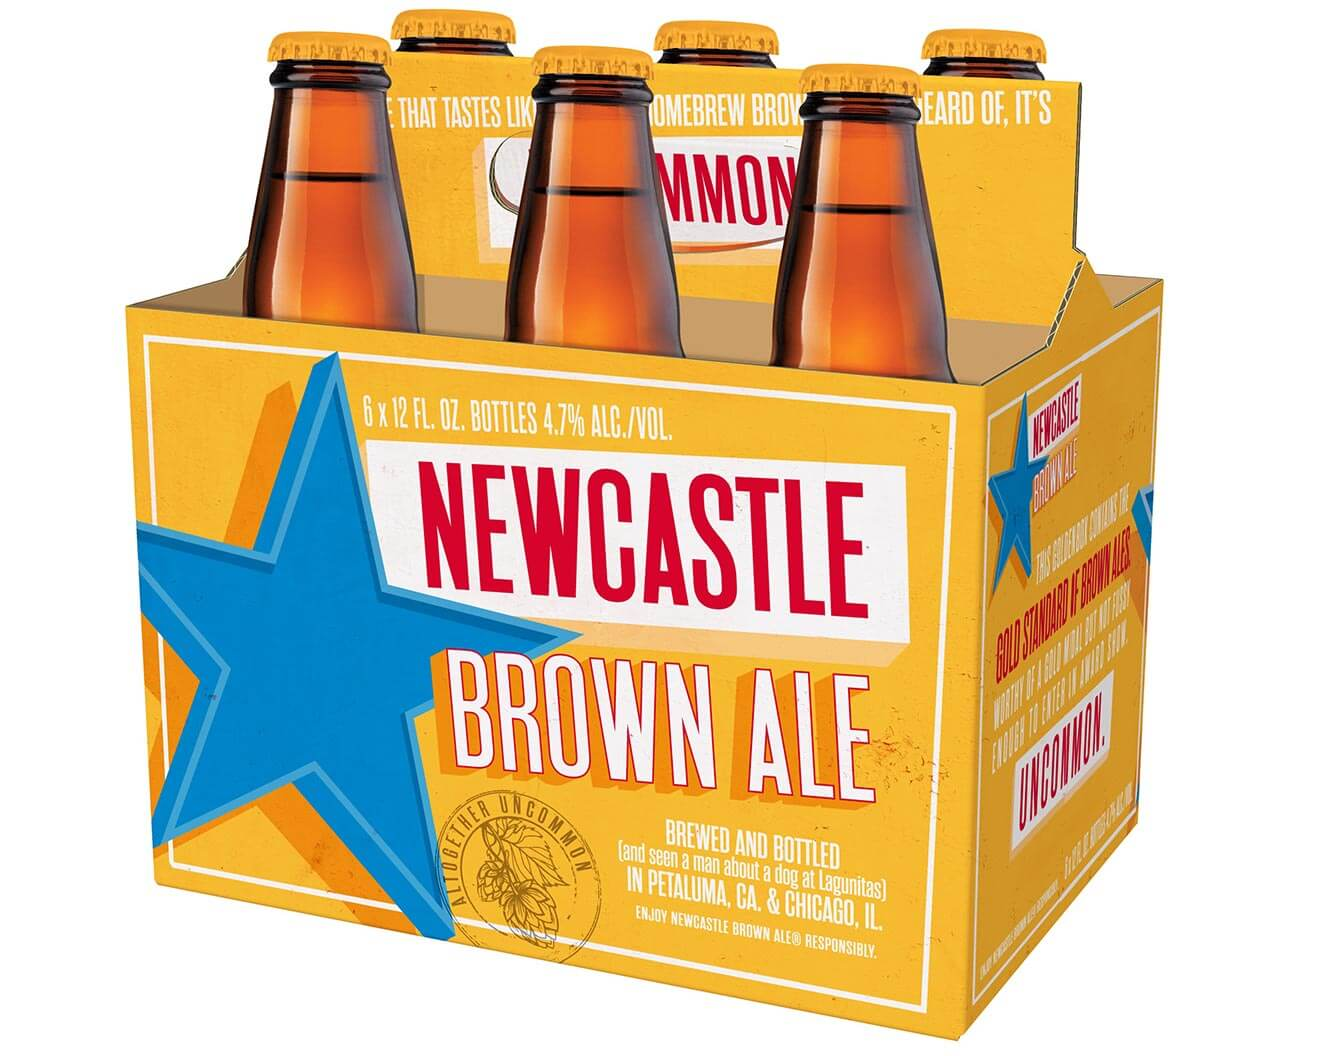 New Castle Brown Ale 6 Pack, bottles on white